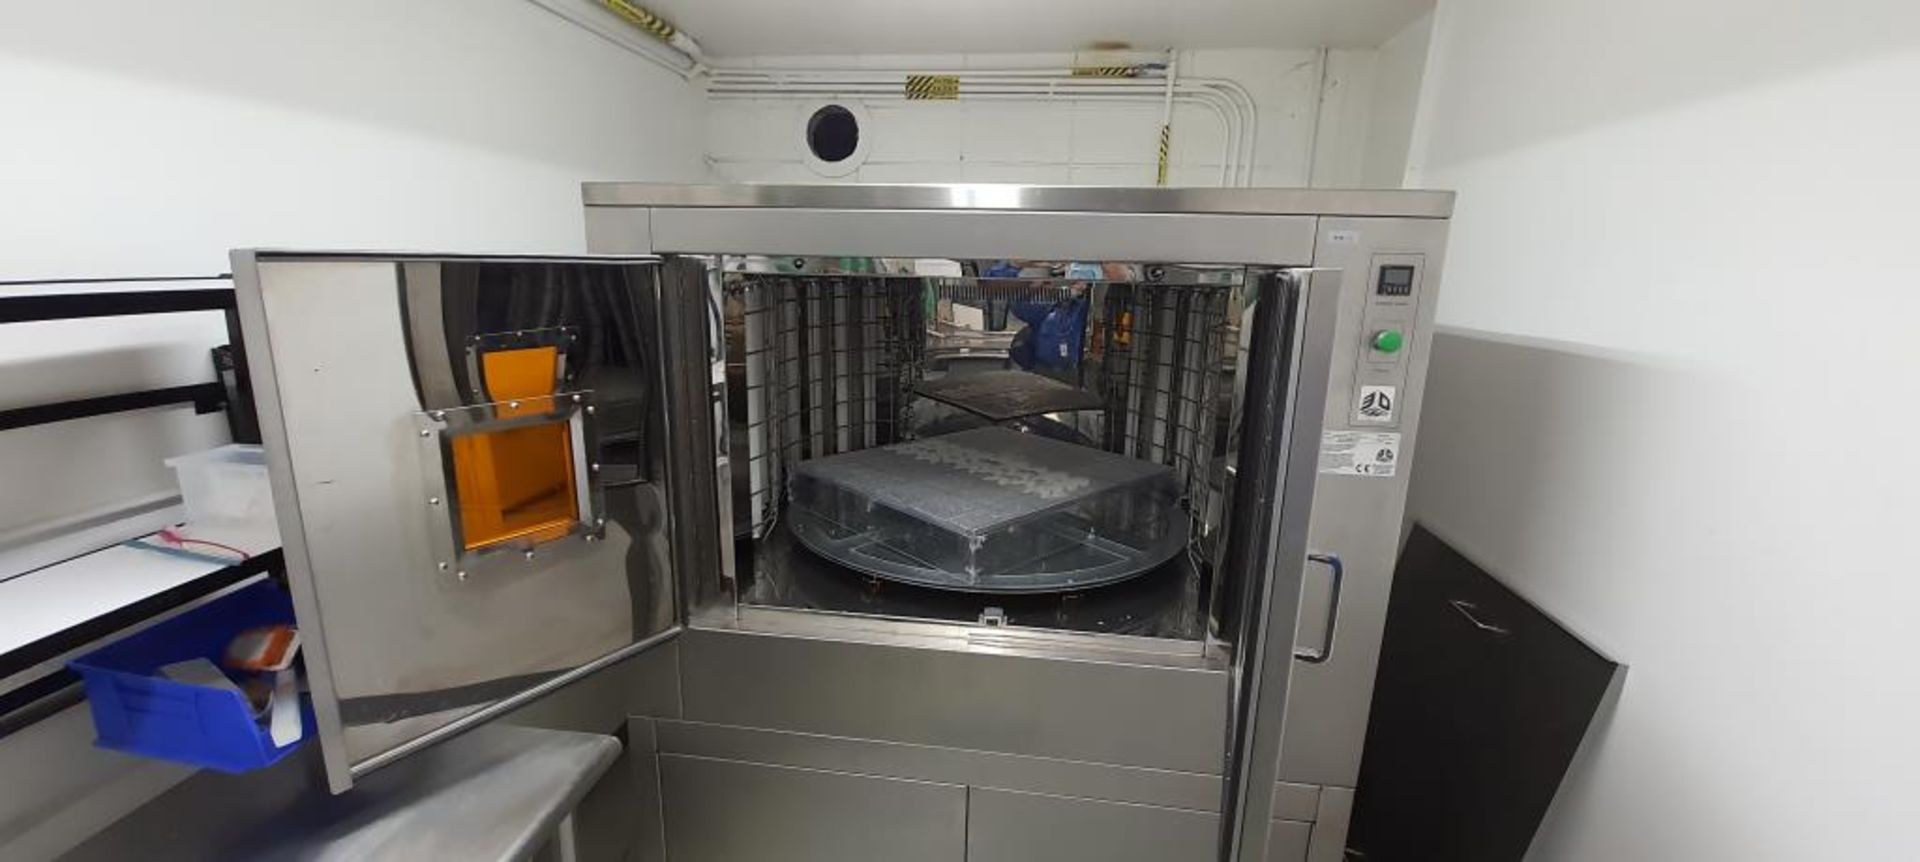 3D UV Curing Oven - Image 2 of 2